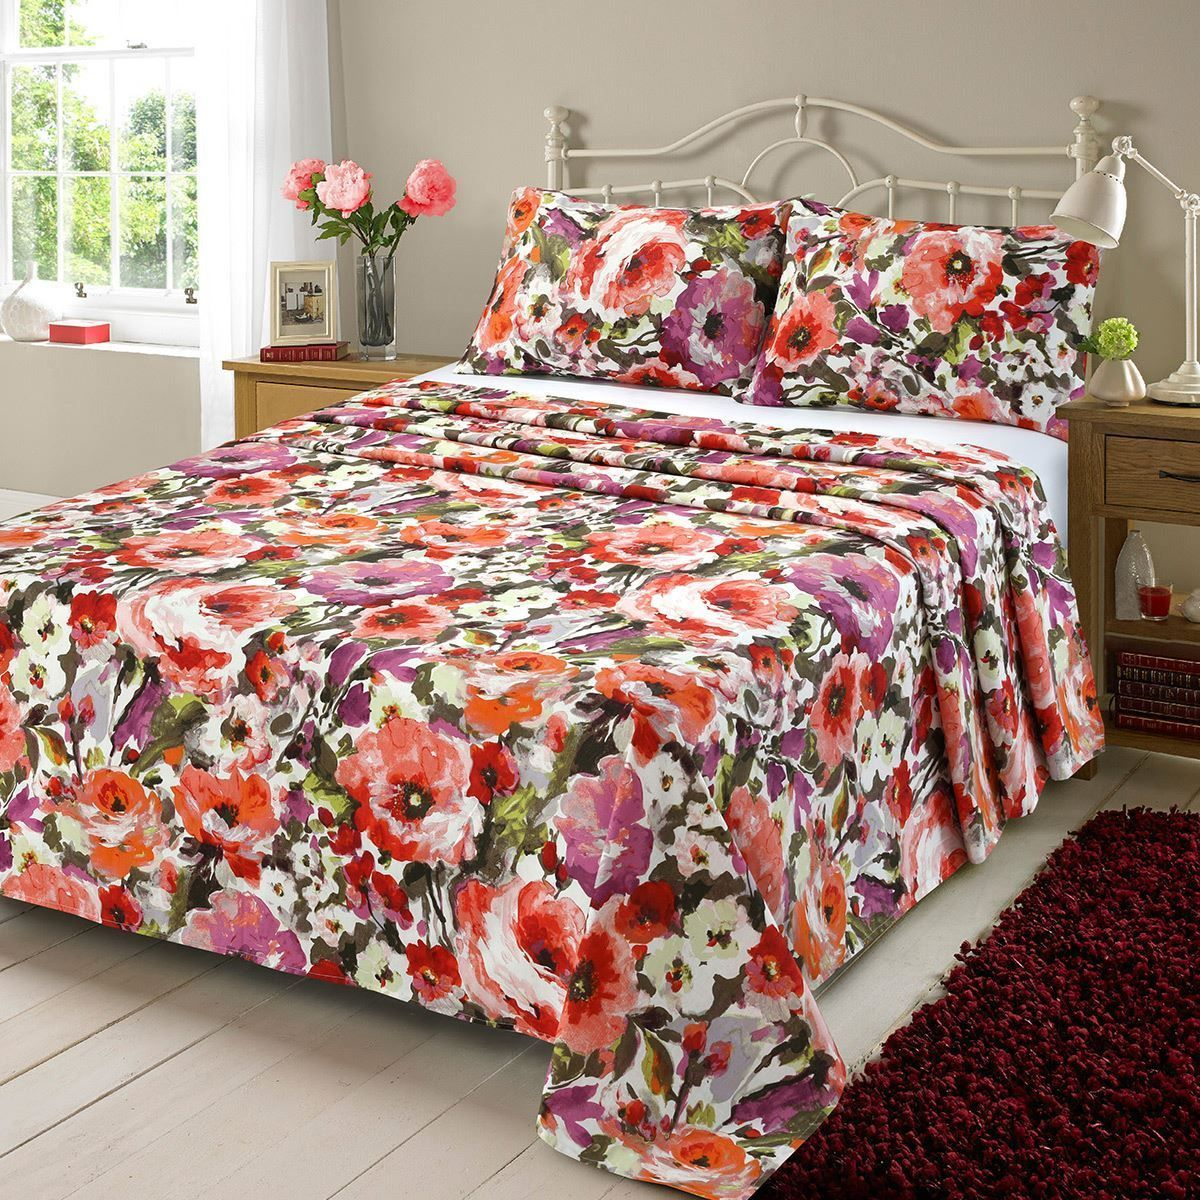 91eecae517 The Perfect Touch, Bedding Sets, Floral Prints, Floral Patterns, Bedding,  Flower